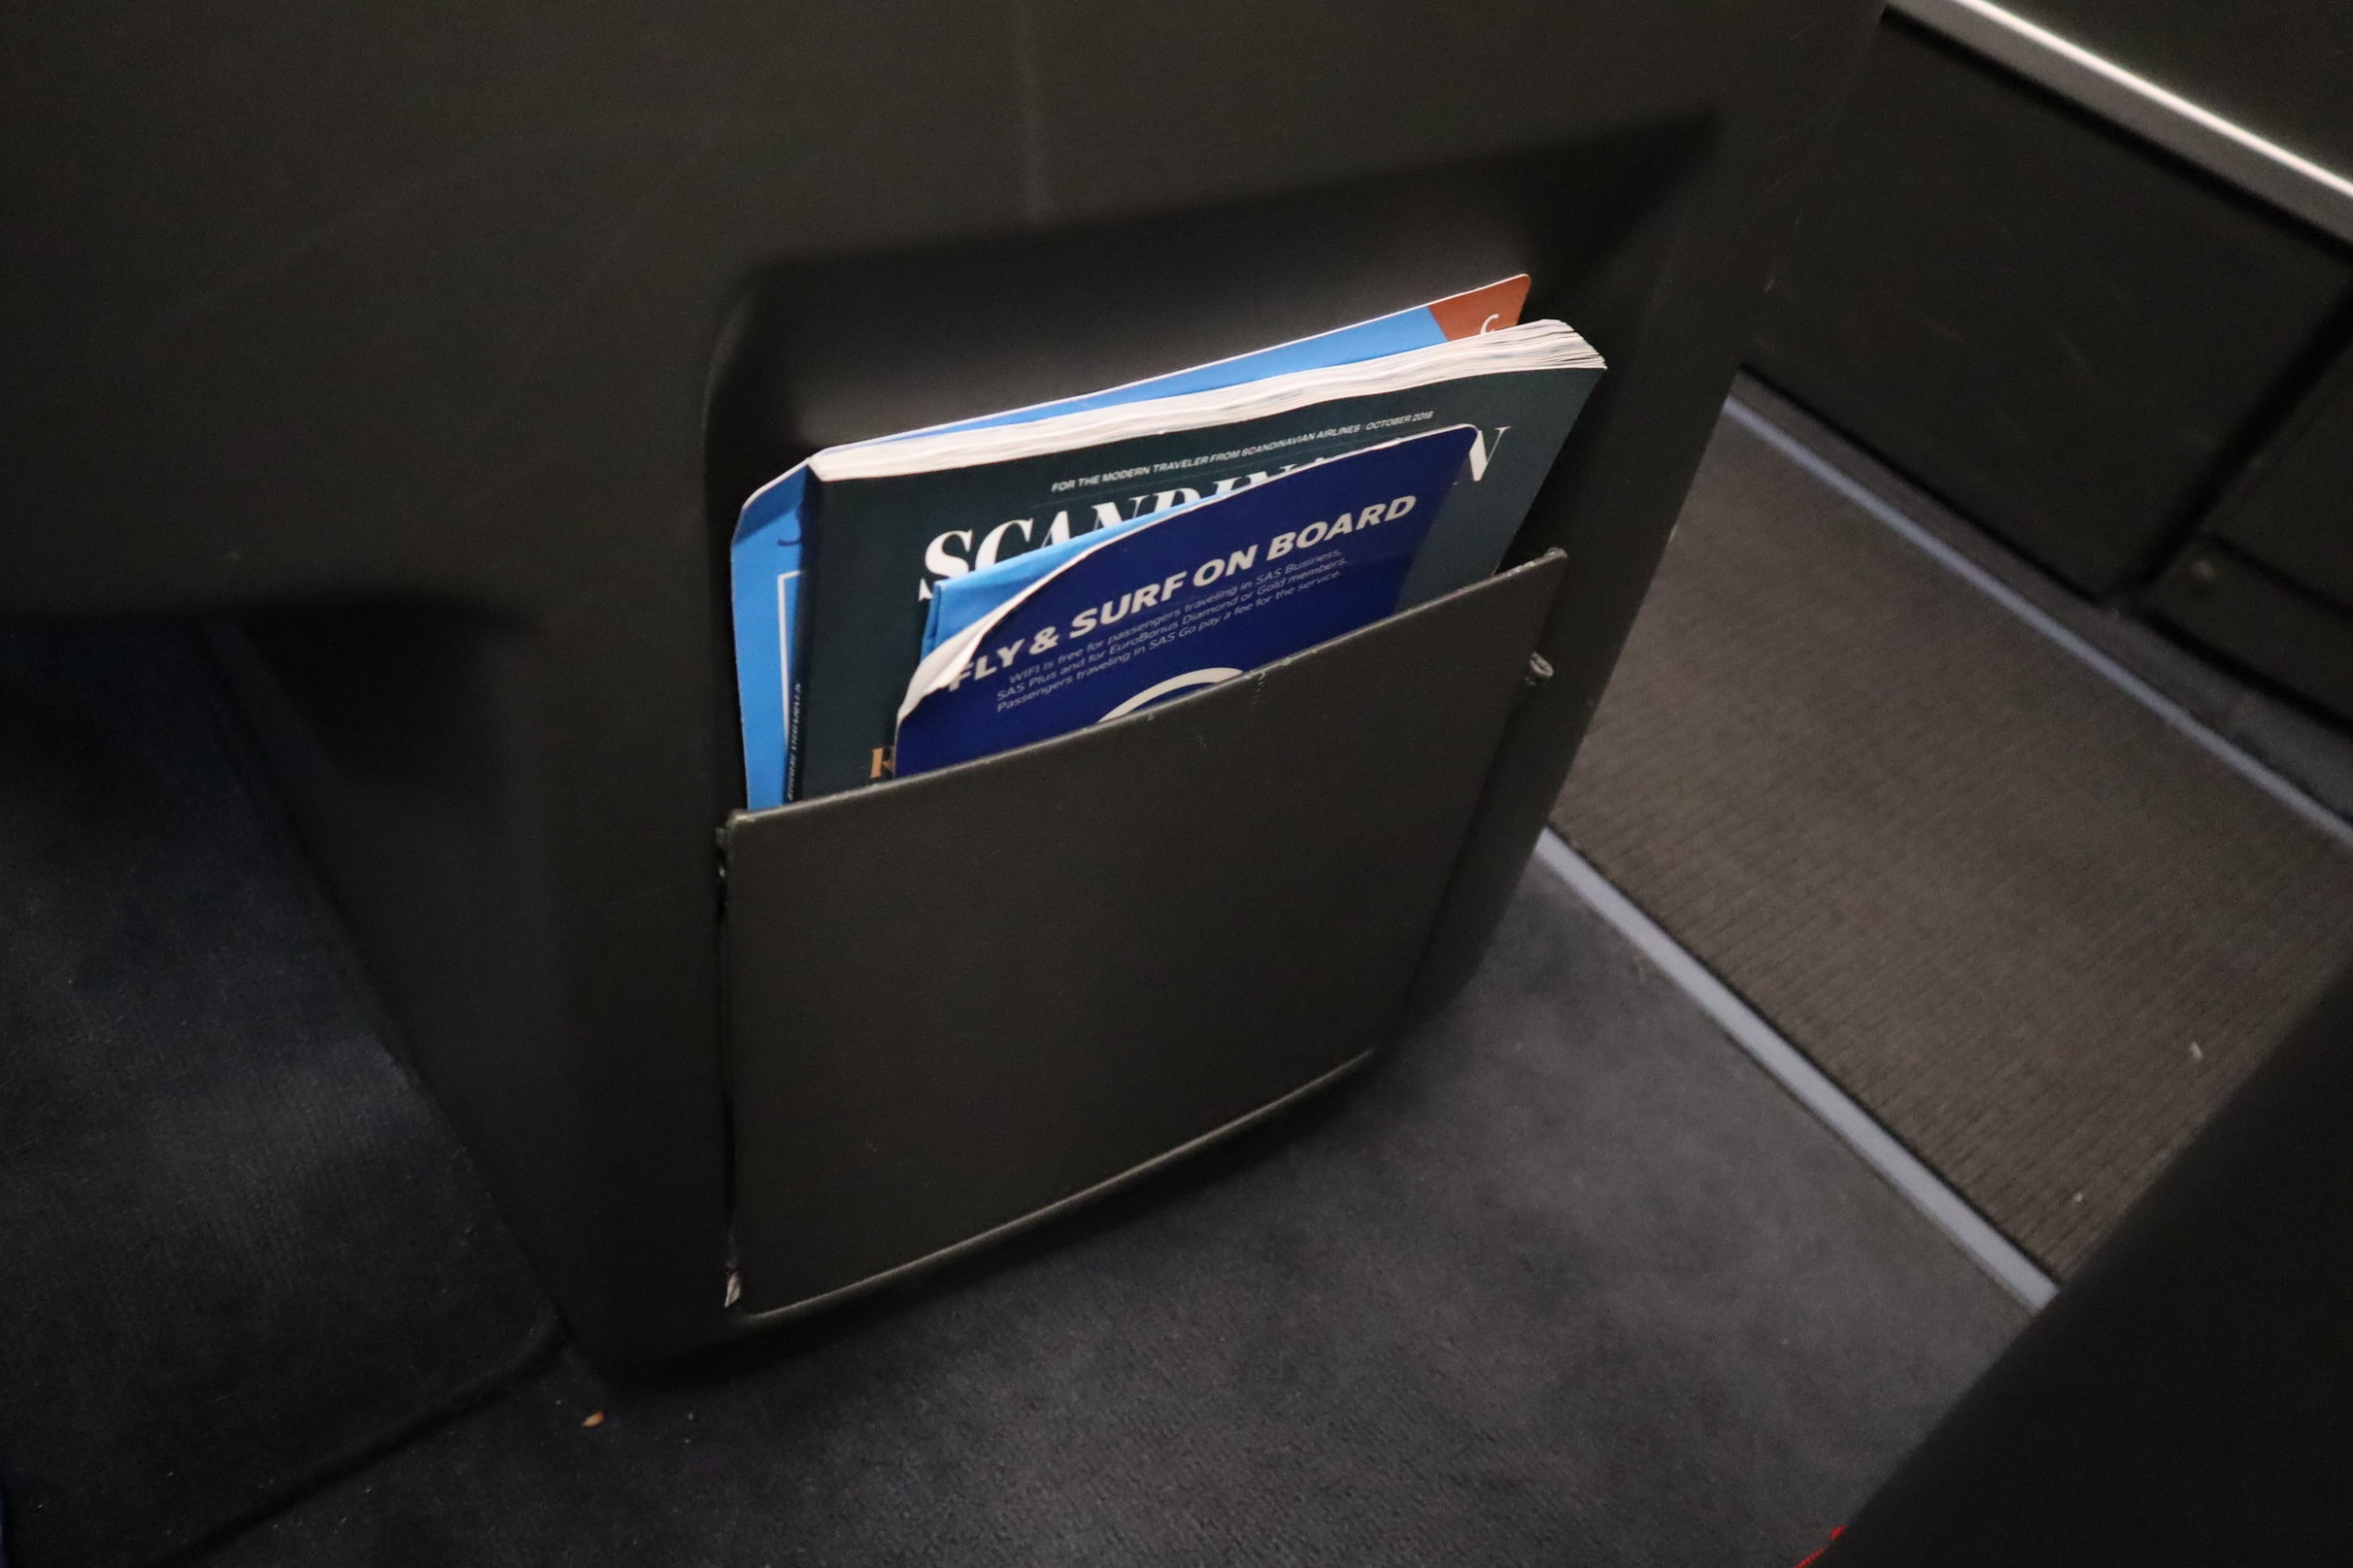 SAS business class – Larger literature pocket